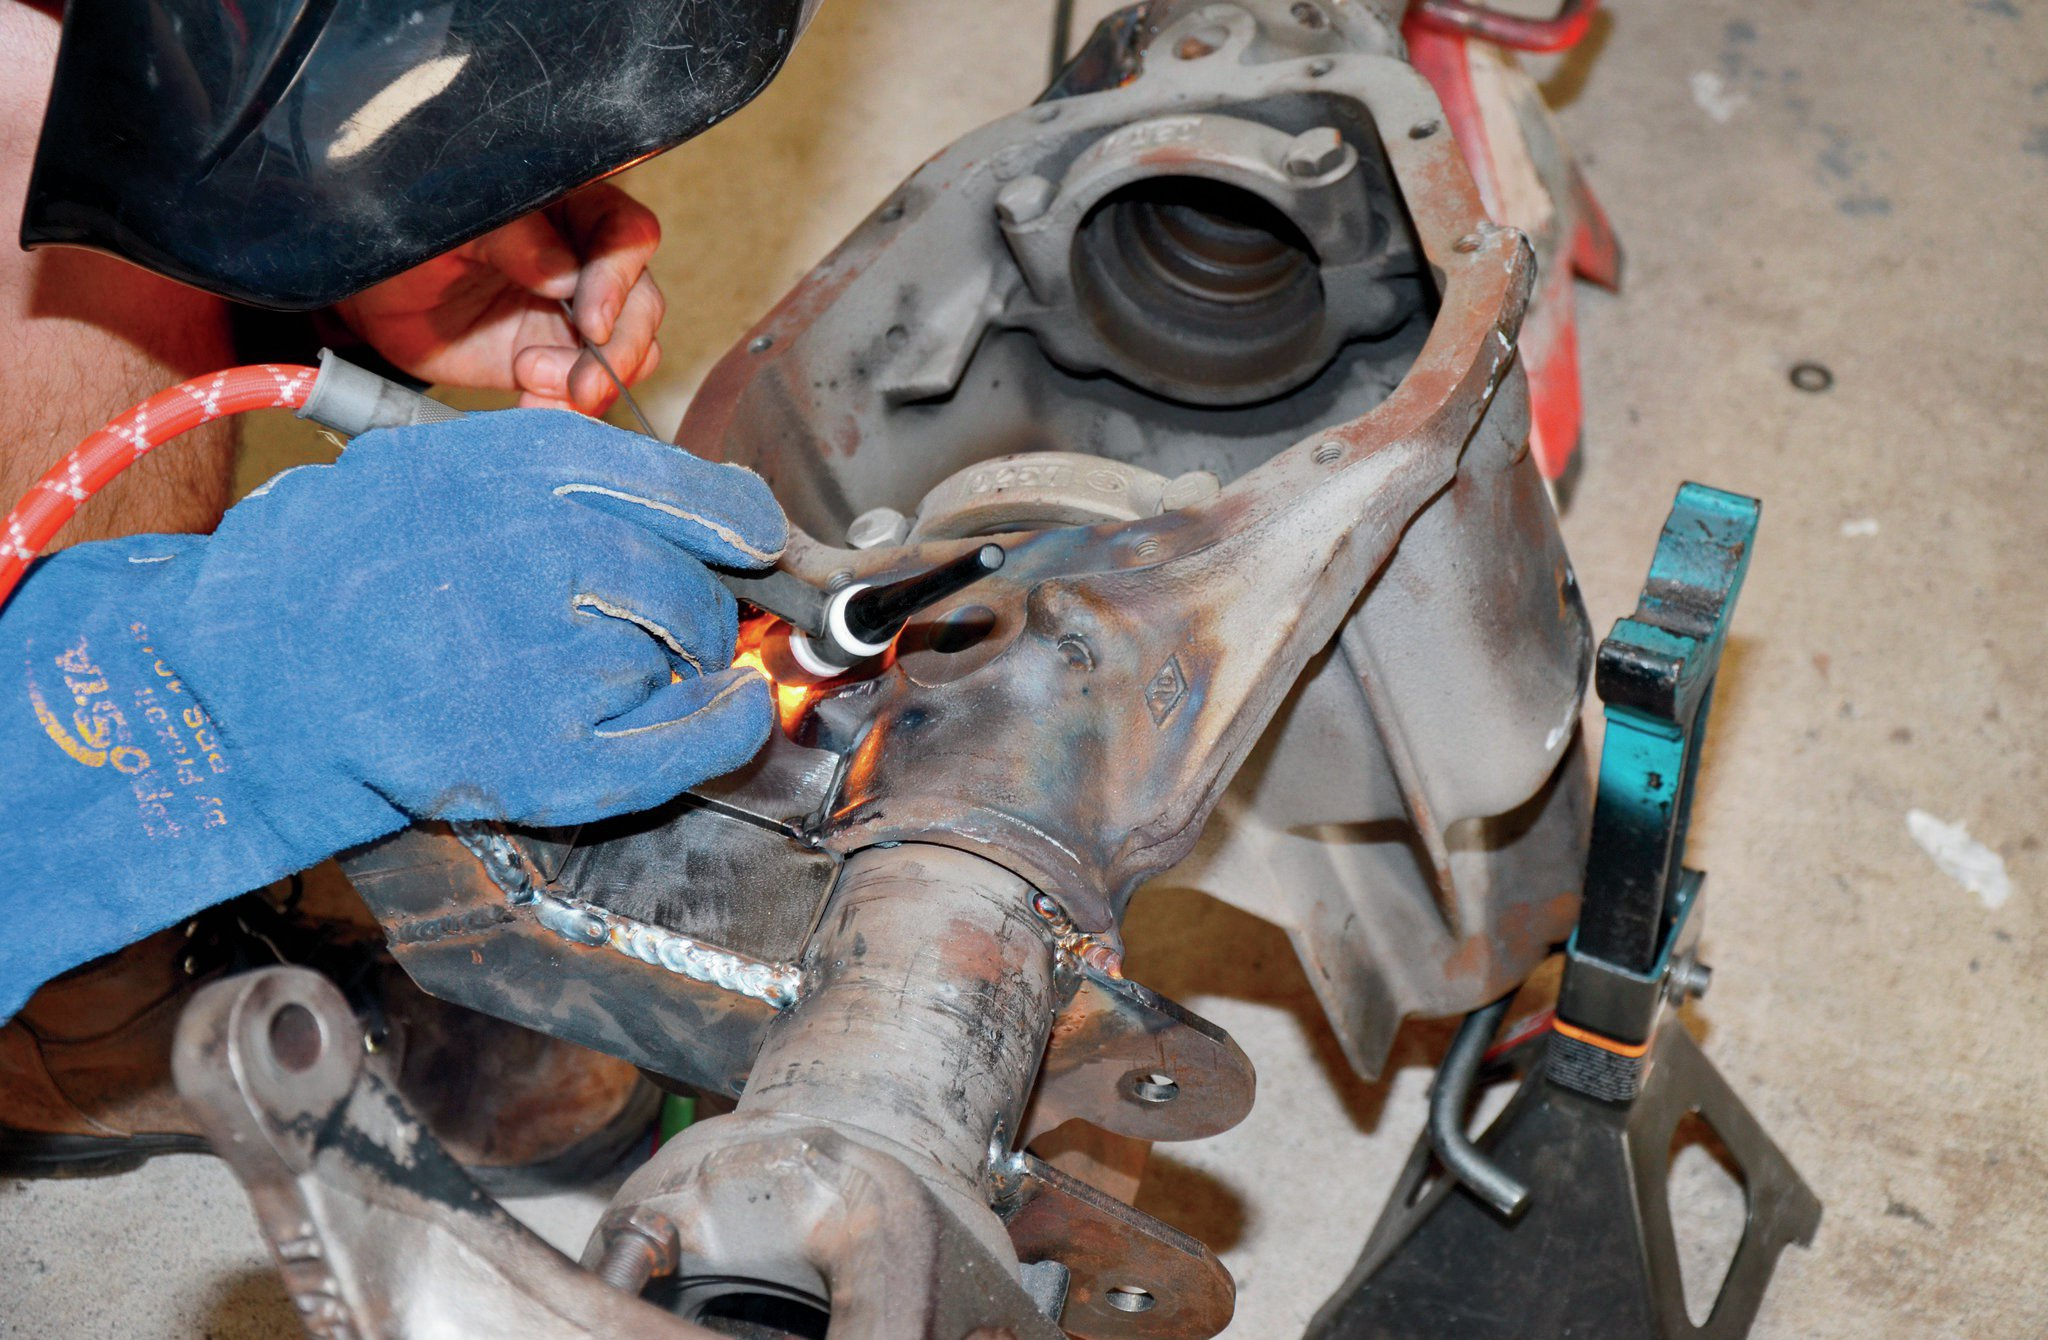 Once the fill plate was in hand, Bonney started pre-heating the Dana 60 cast steel housing with an oxy-acetylene torch. Once properly heated, Bonney TIG welded our plate steel brackets to the casting using special rod he has used in the past. This is not the world's strongest method of welding, but with plenty of surface area joining the cast steel to the plate, we can be sure that our low-slung Jeep will stay together come what may. Once the TIG work is complete, post-heating the casting is necessary to prevent the axle from cooling too quickly.